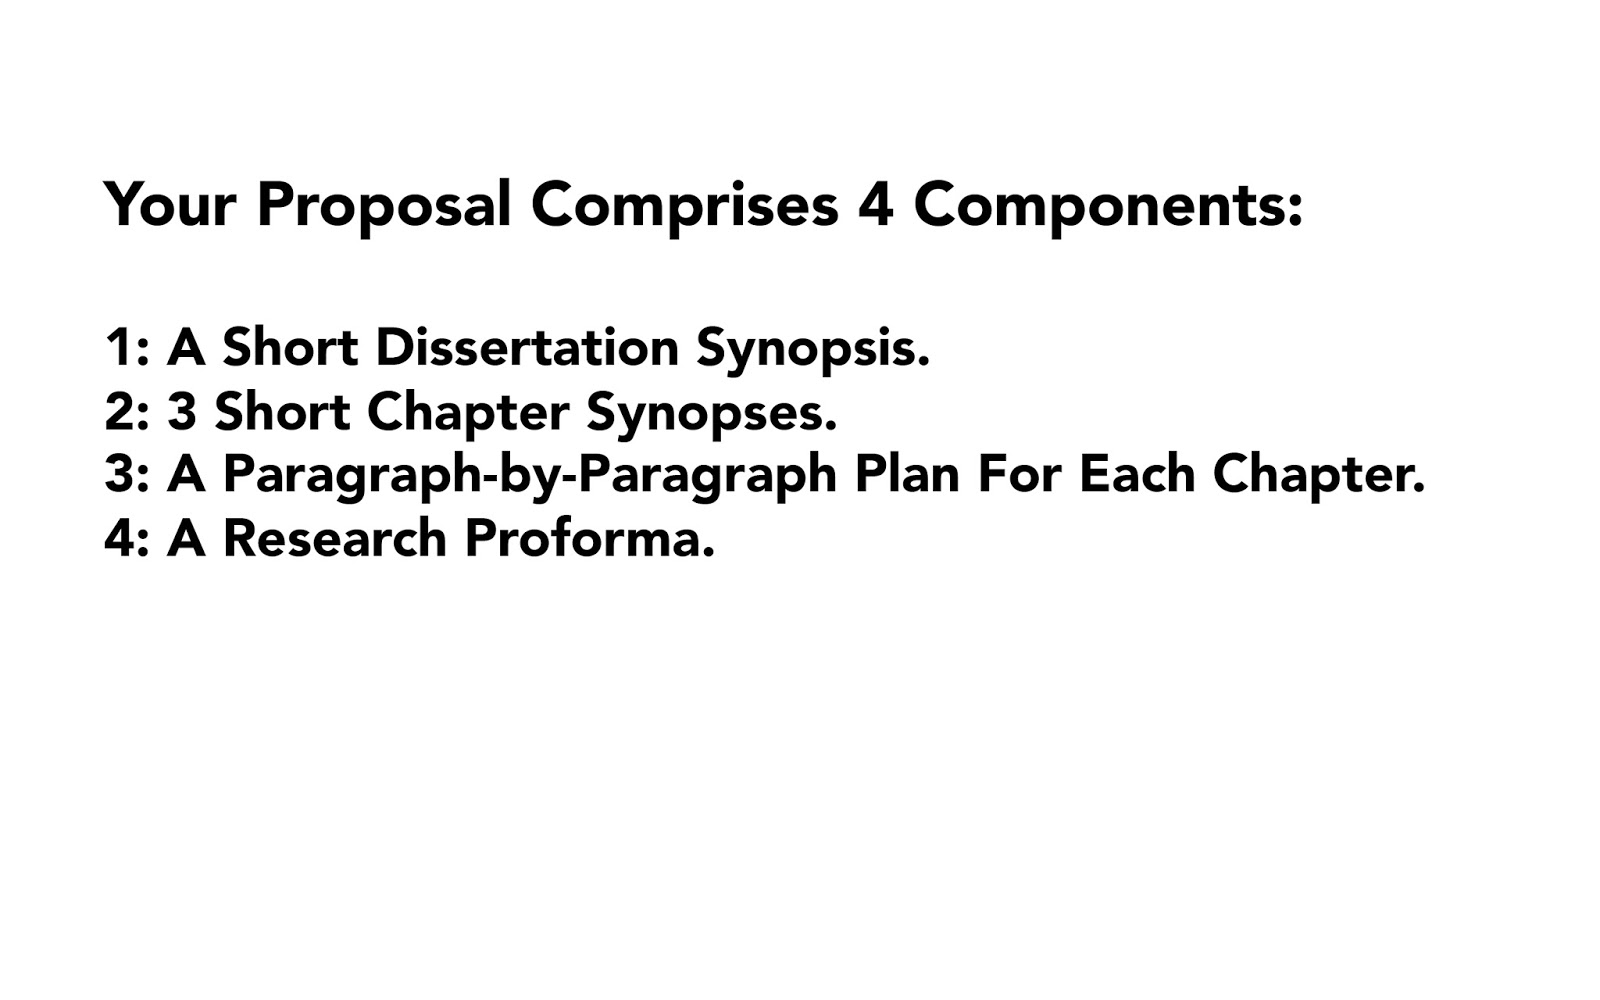 dissertation proposal components Suggested components for thesis/dissertation proposal the components of your thesis proposal may differ based on the type of your research (eg, an original empirical study vs an in-depth review paper quantitative research also differs form.